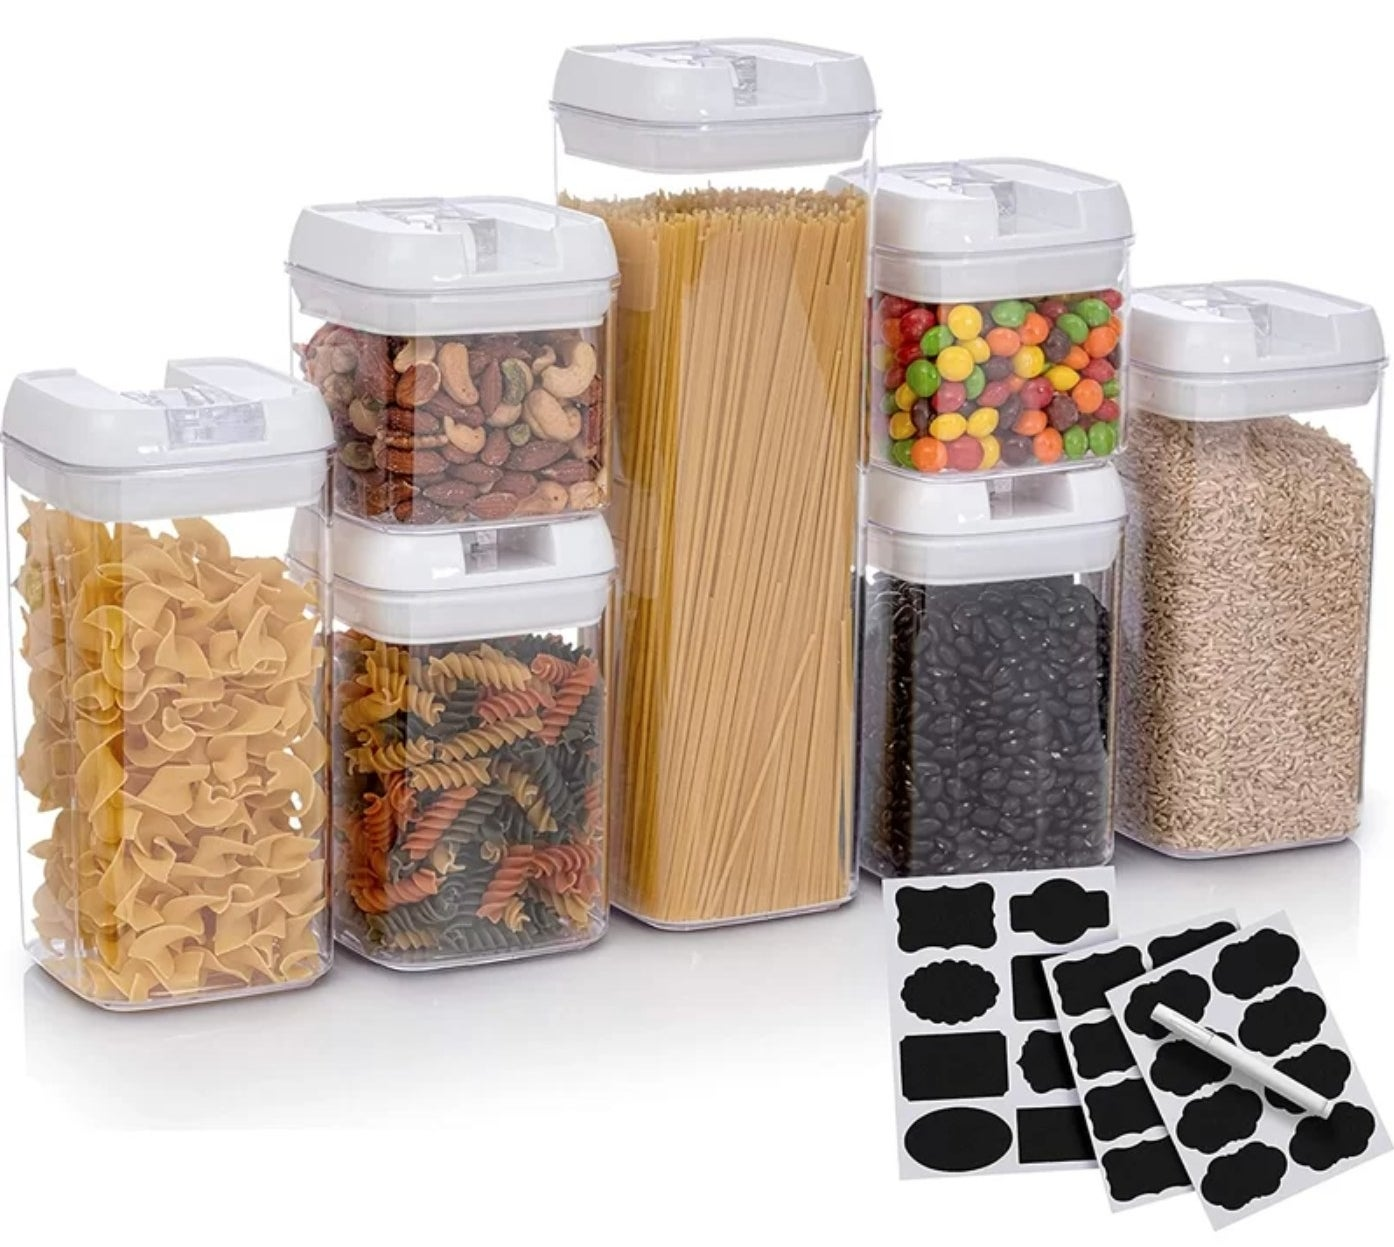 The seven container food storage set